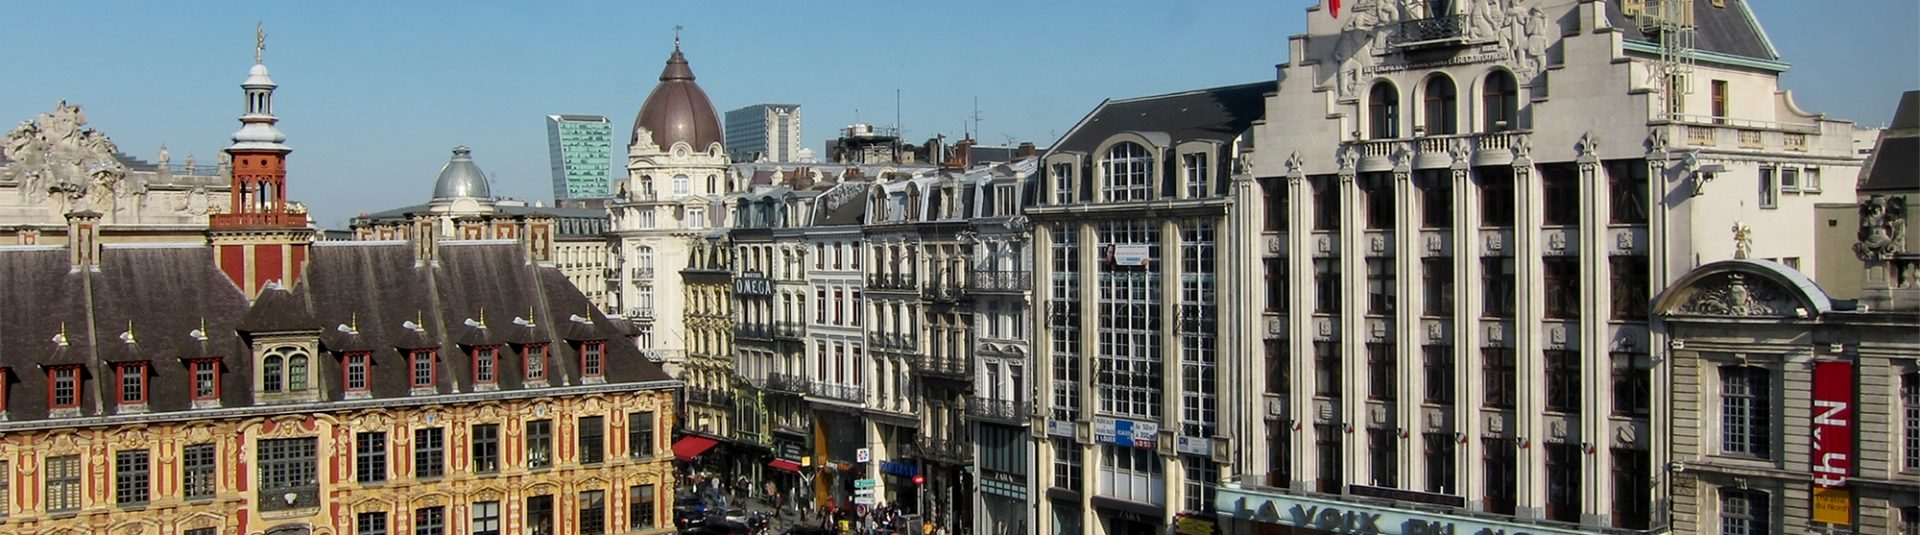 """<a href=""""http://www.directoryofdestinations.com/country/france/"""" rel=""""tag"""">France</a>"""